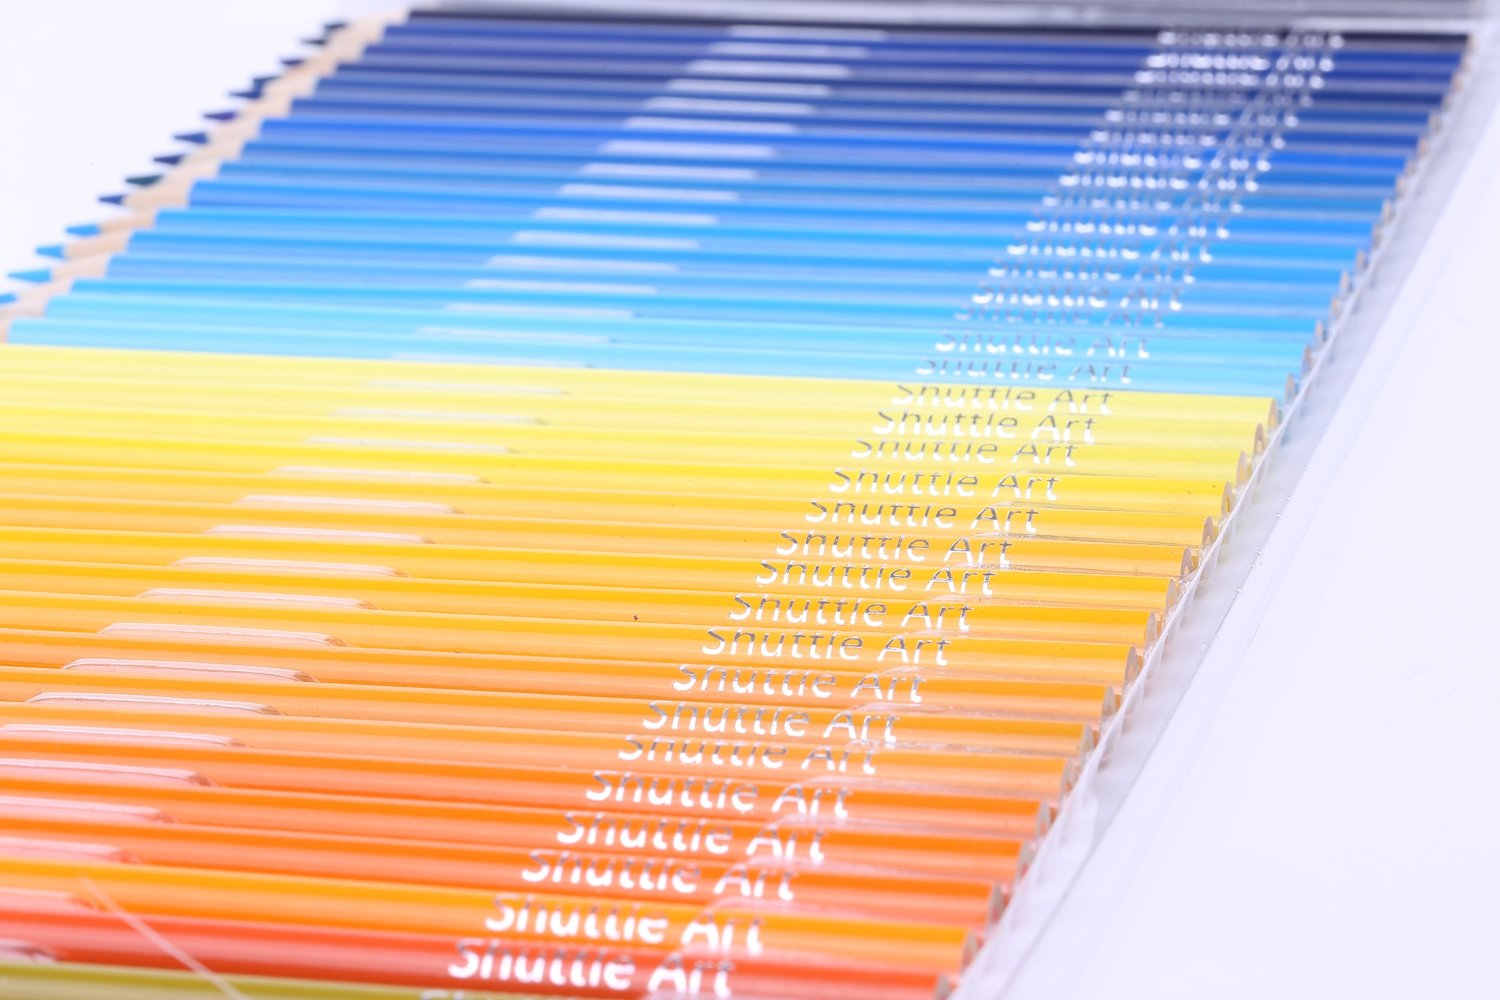 Shuttle Art - 3 set of 136 Colored Pencils,Colored Pencil Set for Adult Coloring Books